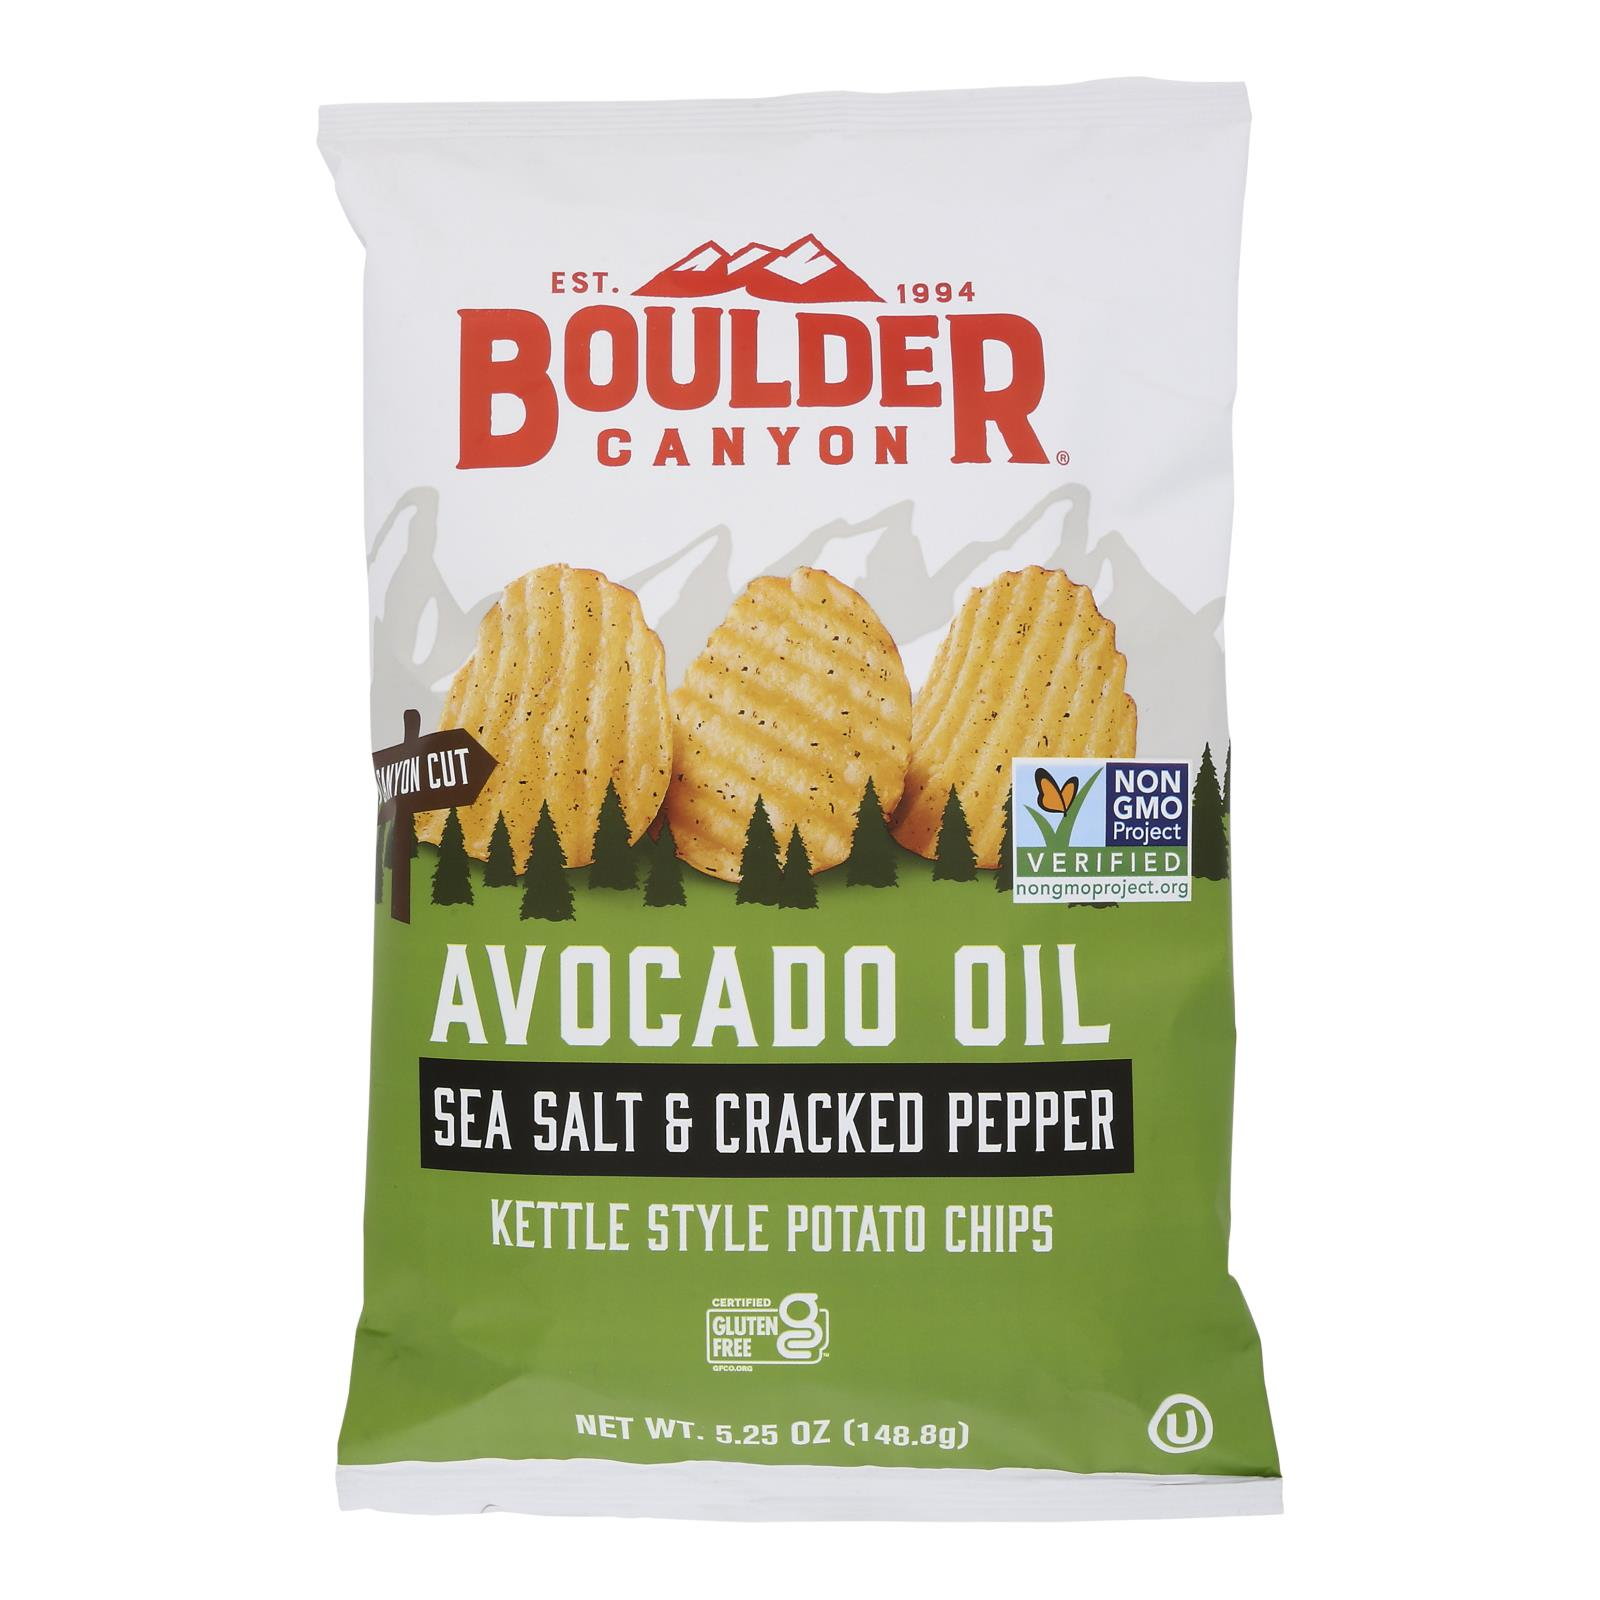 Boulder Canyon - Avocado Oil Canyon Cut Potato Chips - Sea Salt and Cracked Pepper - Case of 12 - 5.25 oz.